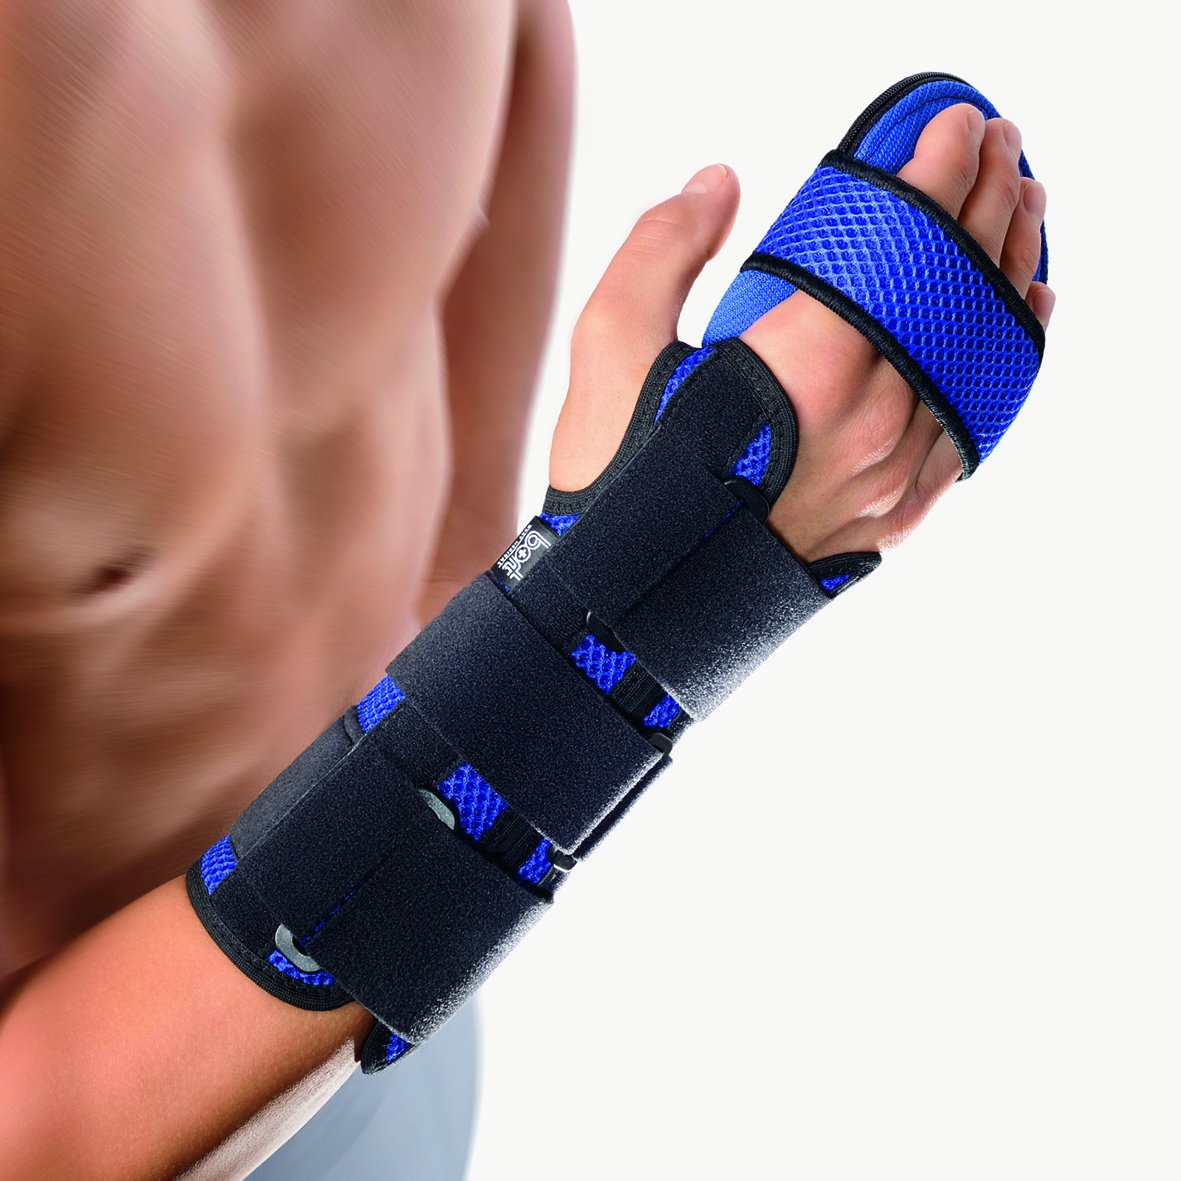 Bort Soft Hand Splint Brace with Finger Support Carpal Tunne Night Wrist Splint Support Immobilizer Finger Wrist Fracture Fixation Scaffold for Pain Tendinitis Sprain - MD, R, BLUE, 6.7'' - 7.5'' inches